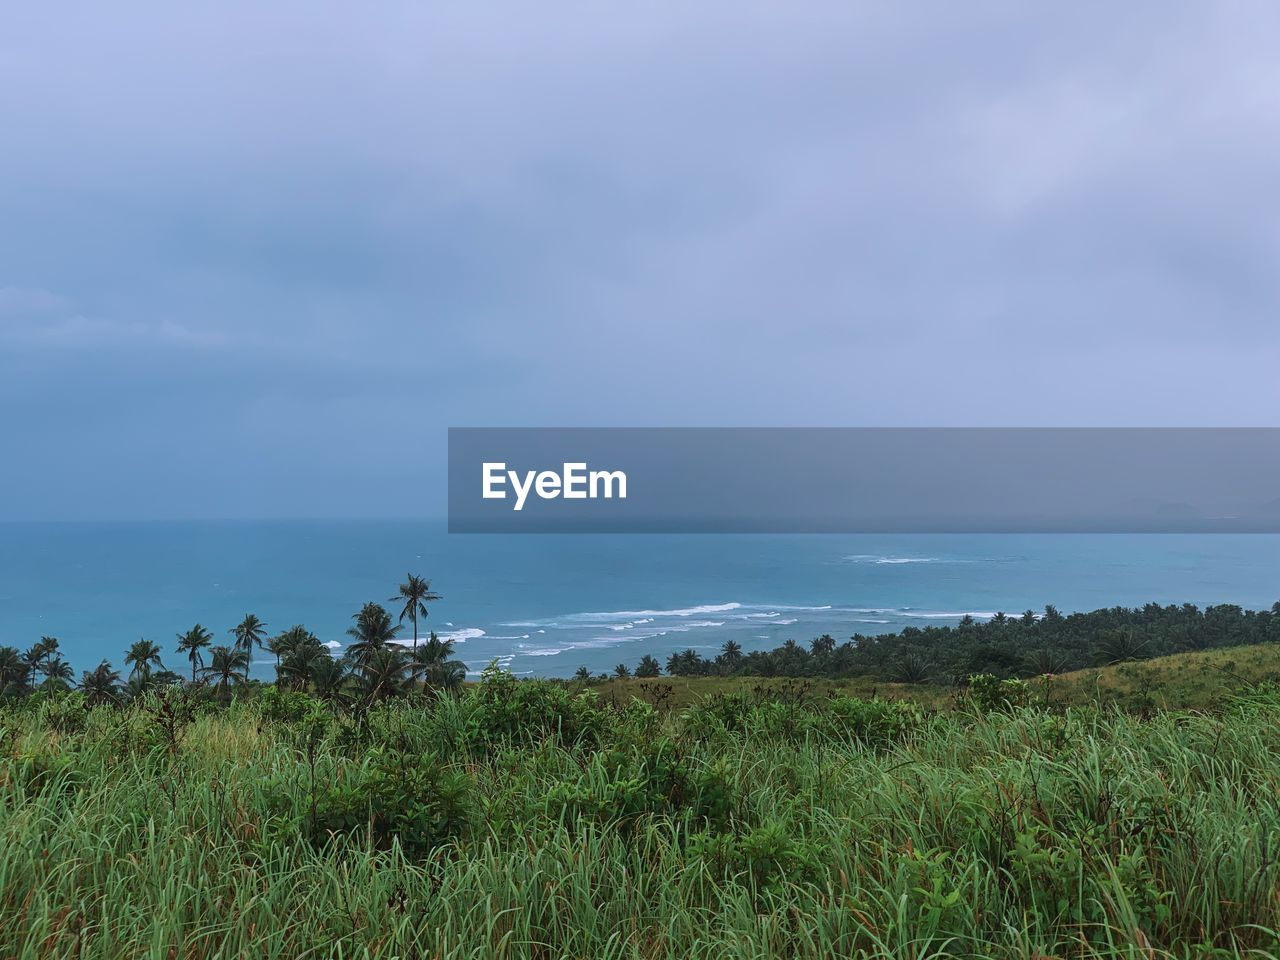 sky, scenics - nature, water, beauty in nature, sea, plant, land, grass, horizon, tranquil scene, tranquility, horizon over water, nature, no people, beach, growth, cloud - sky, environment, non-urban scene, outdoors, marram grass